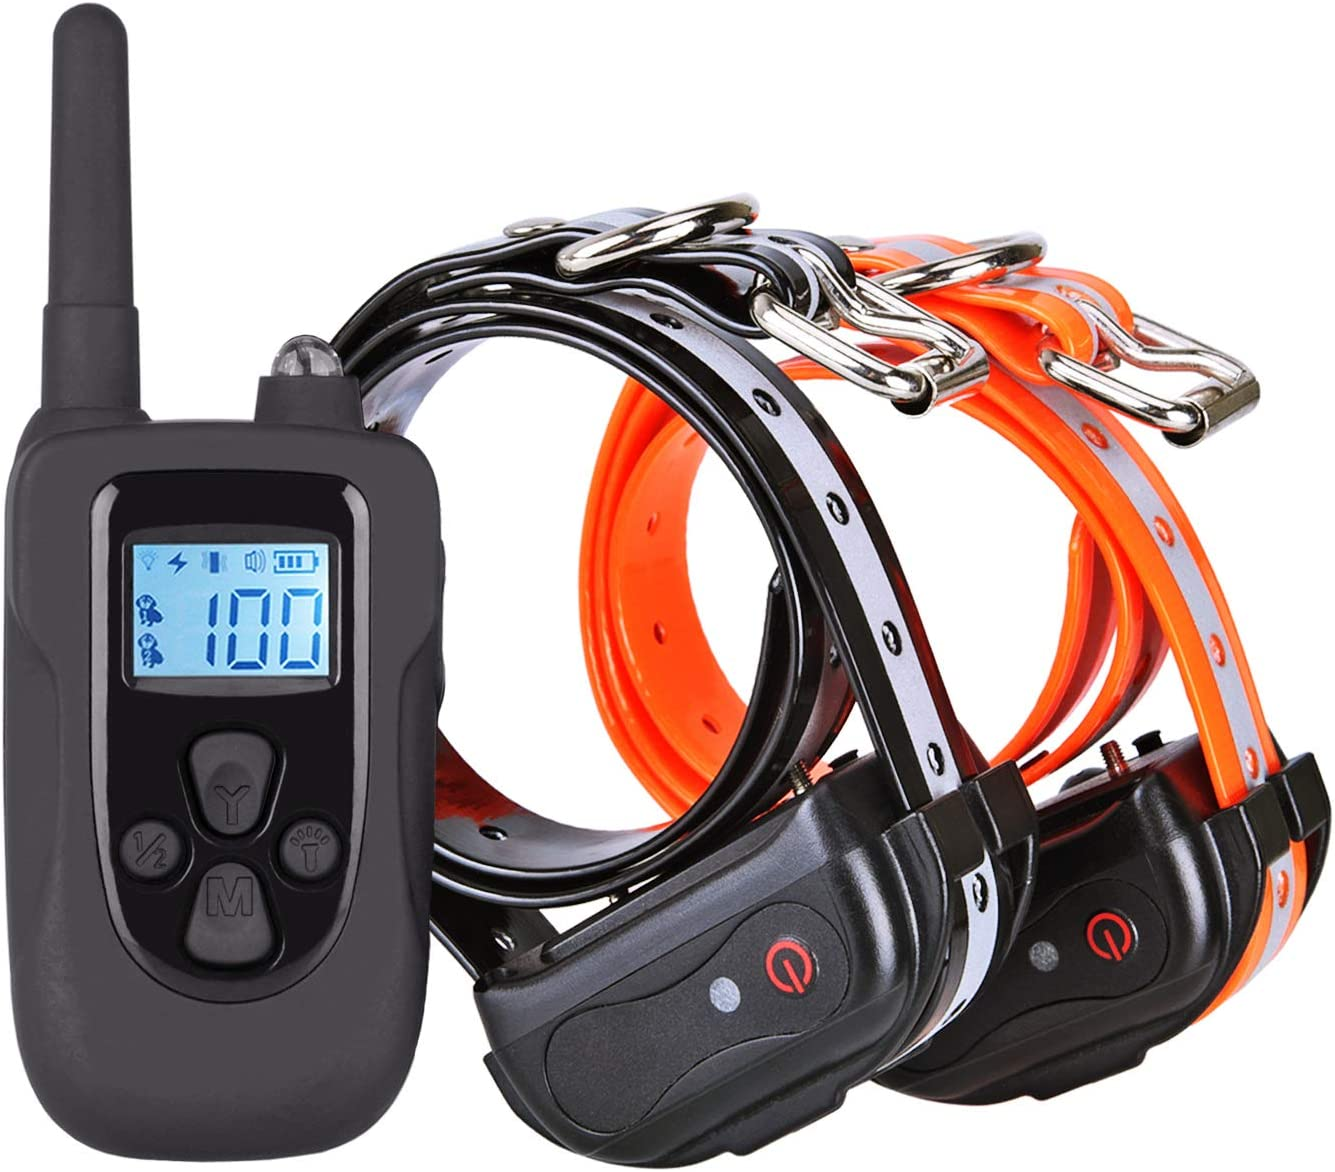 ETPET Shock Collar with Beep Vibrating and Shock for 2 Dogs- Remote Controlled Dog Training Collar 1000 ft Range-Rechargeable and Waterproof Electronic Reflective Collar for Dogs 10Lbs-100Lbs